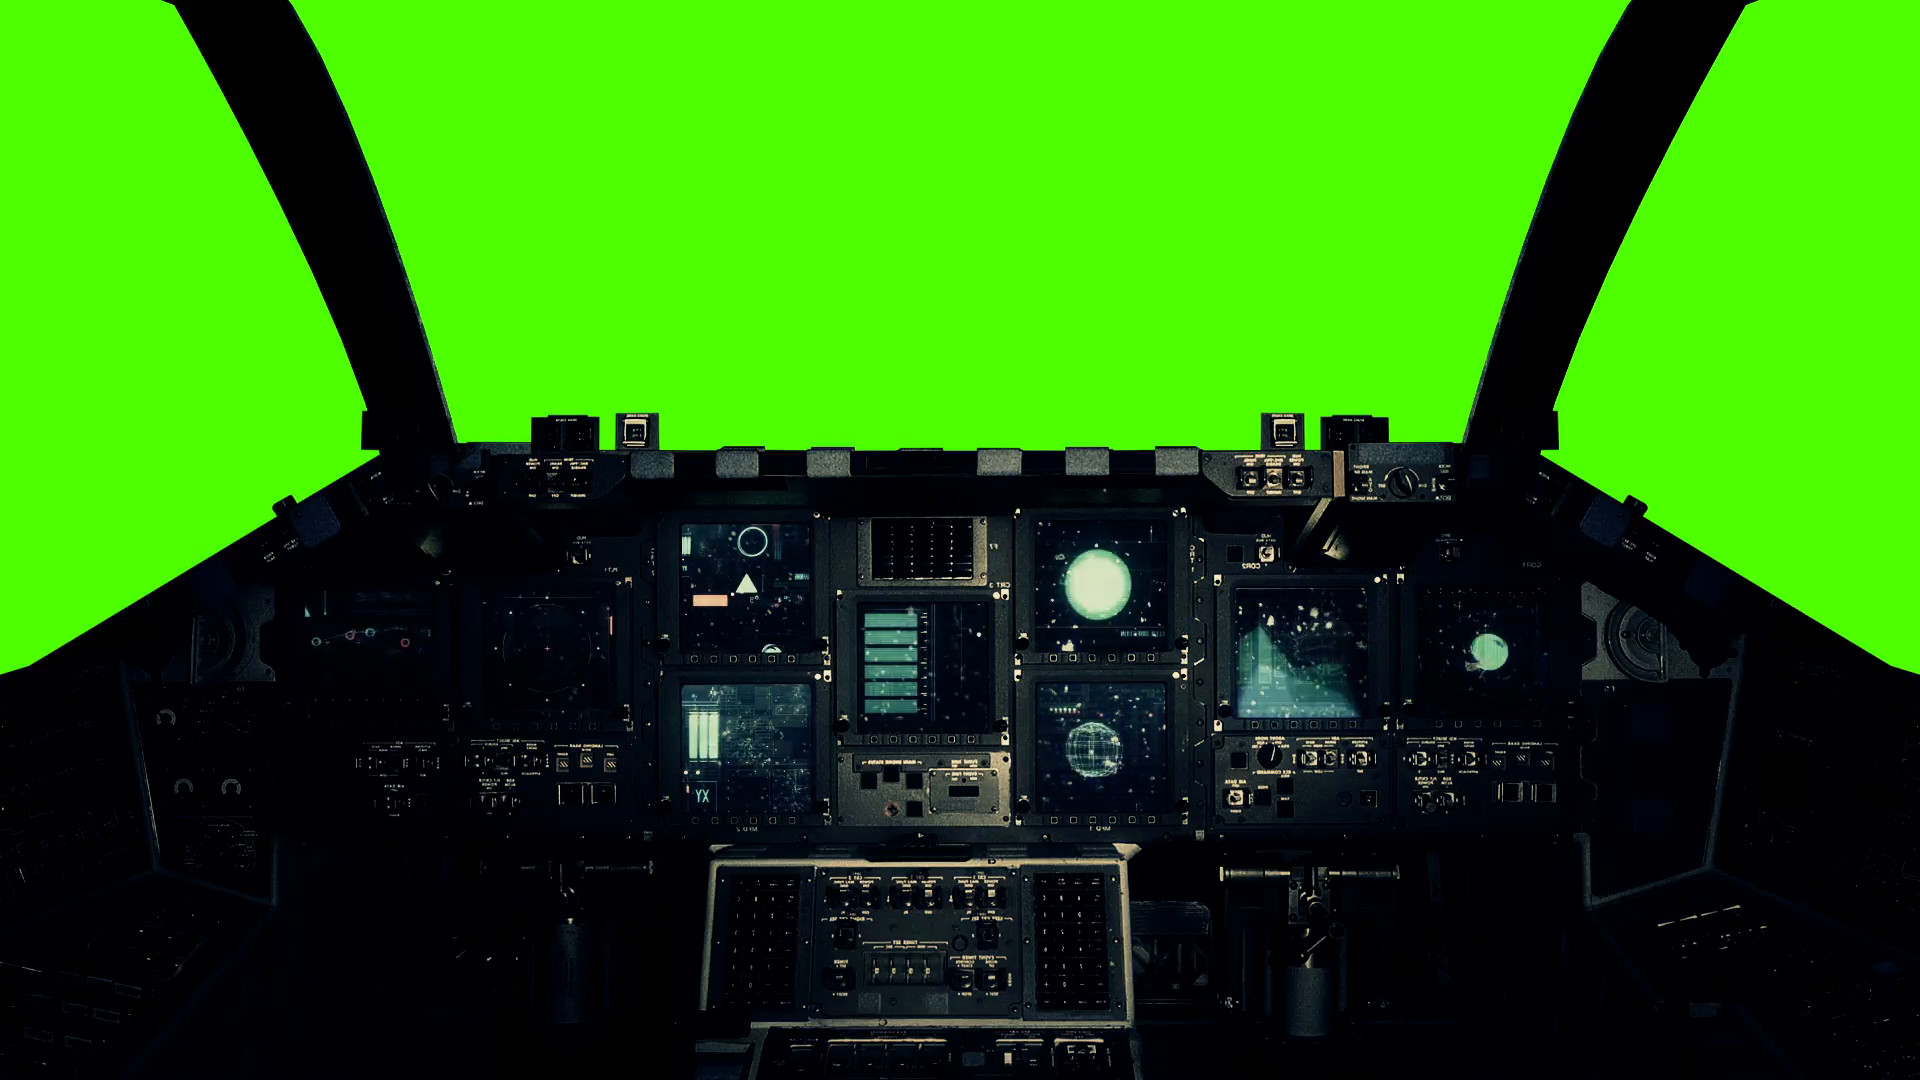 Res: 1920x1080, Spaceship Cockpit in a Pilot Point of view on a Green Screen Background  Stock Video Footage - Videoblocks